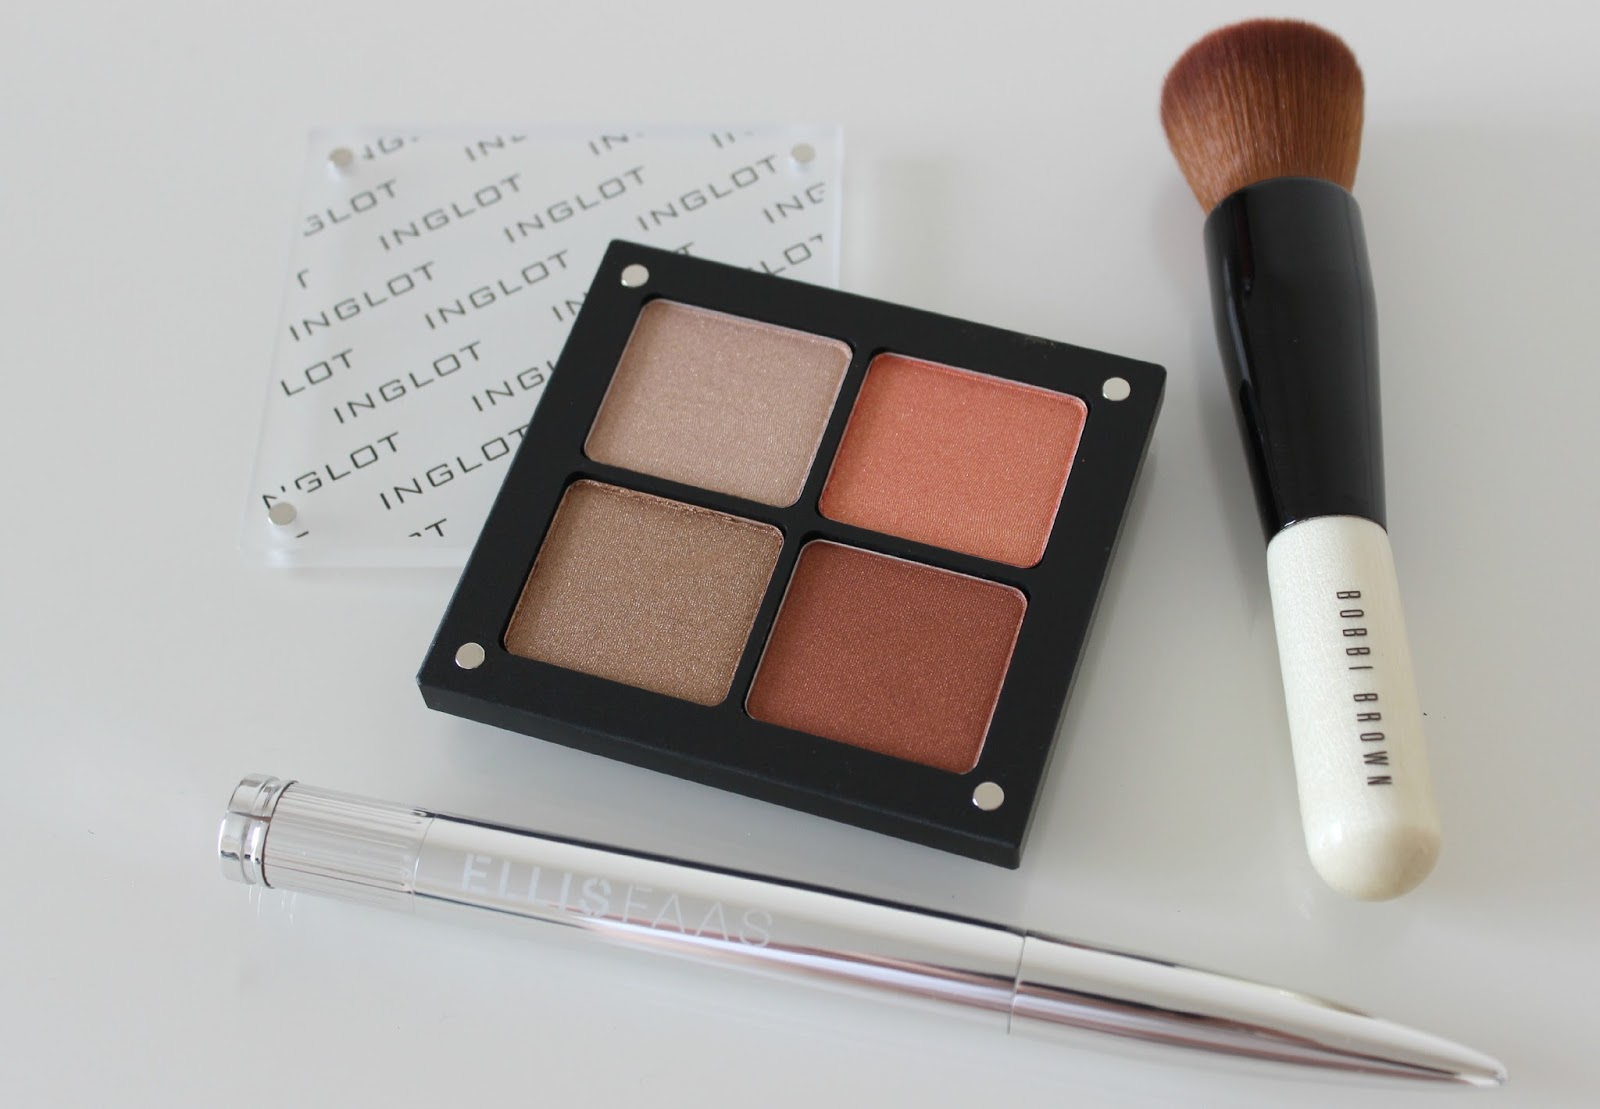 A picture of Inglot 4 Pan Eyeshadow Palette, Bobbi Brown Full Coverage Face Brush and Ellis Faas Hot Lips L404